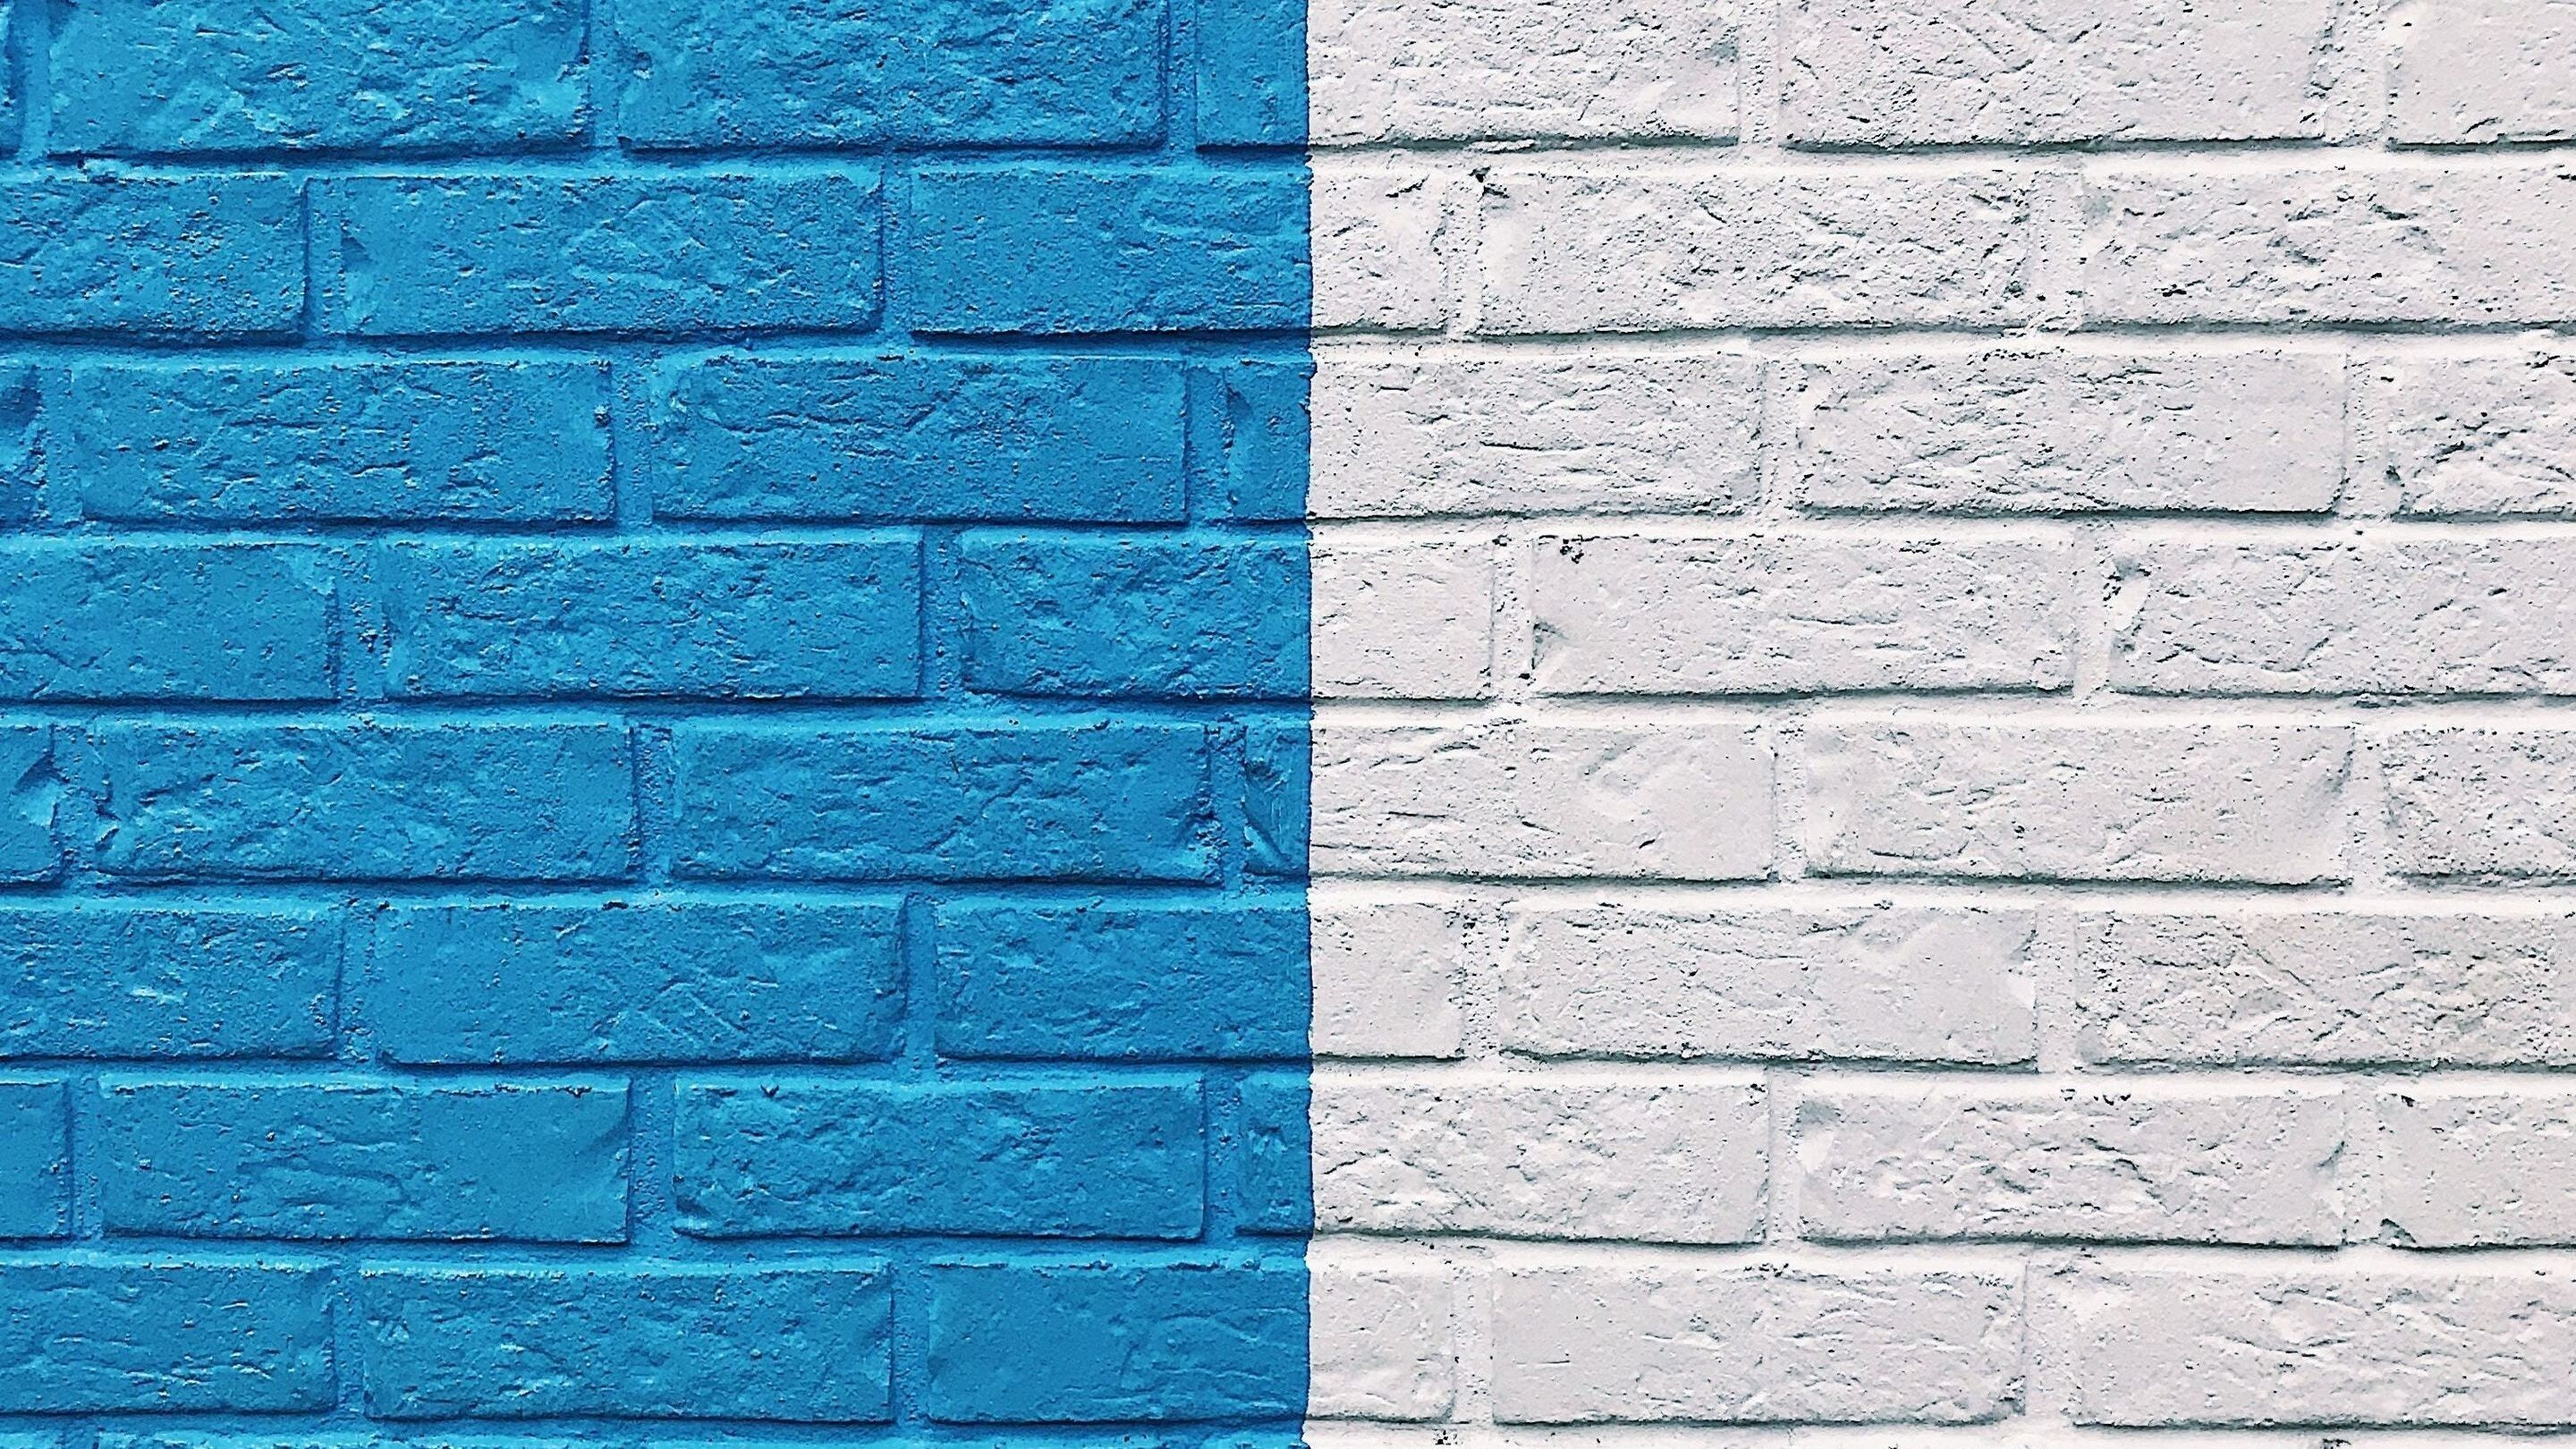 Blue and White Creative Wall Paint HD Wallpaper Background